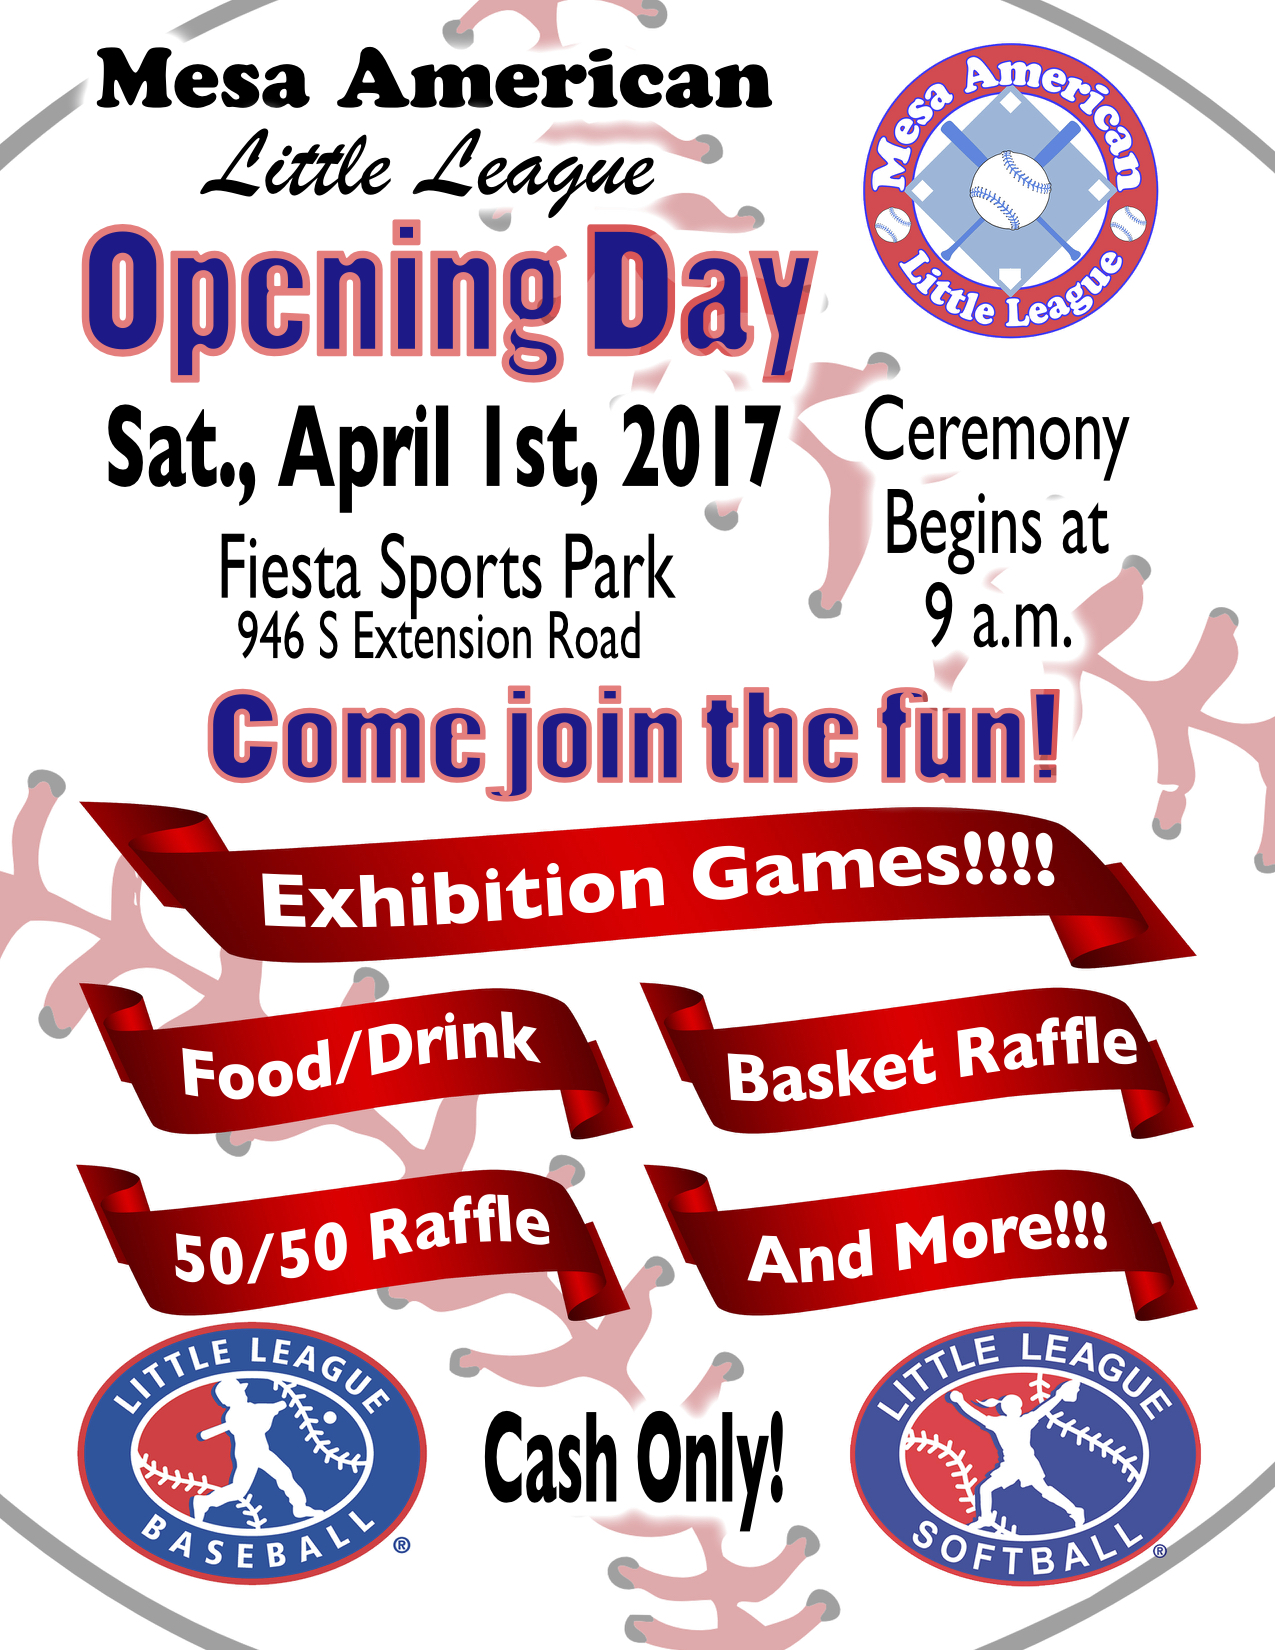 MALL-OpeningDay-Flyer2017-2-1275